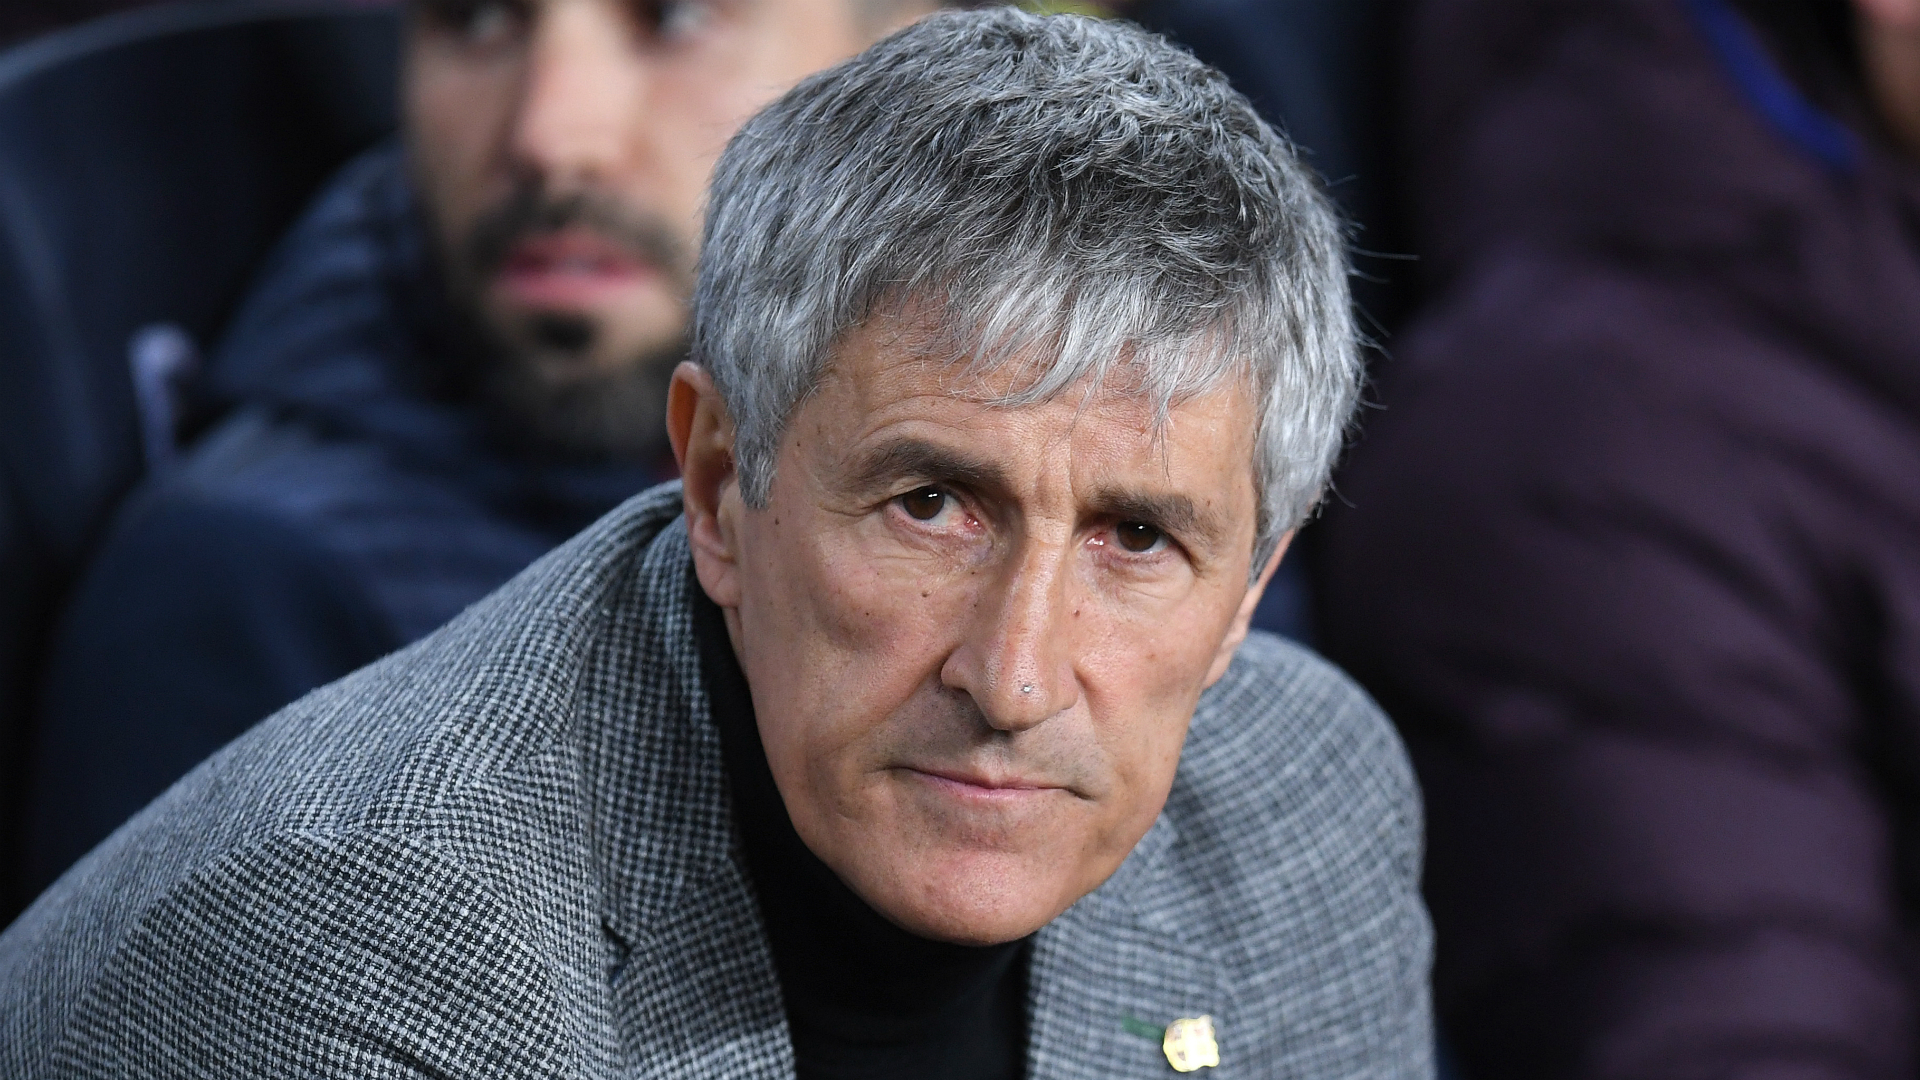 Setien says Barcelona are not distracted by off-field issues